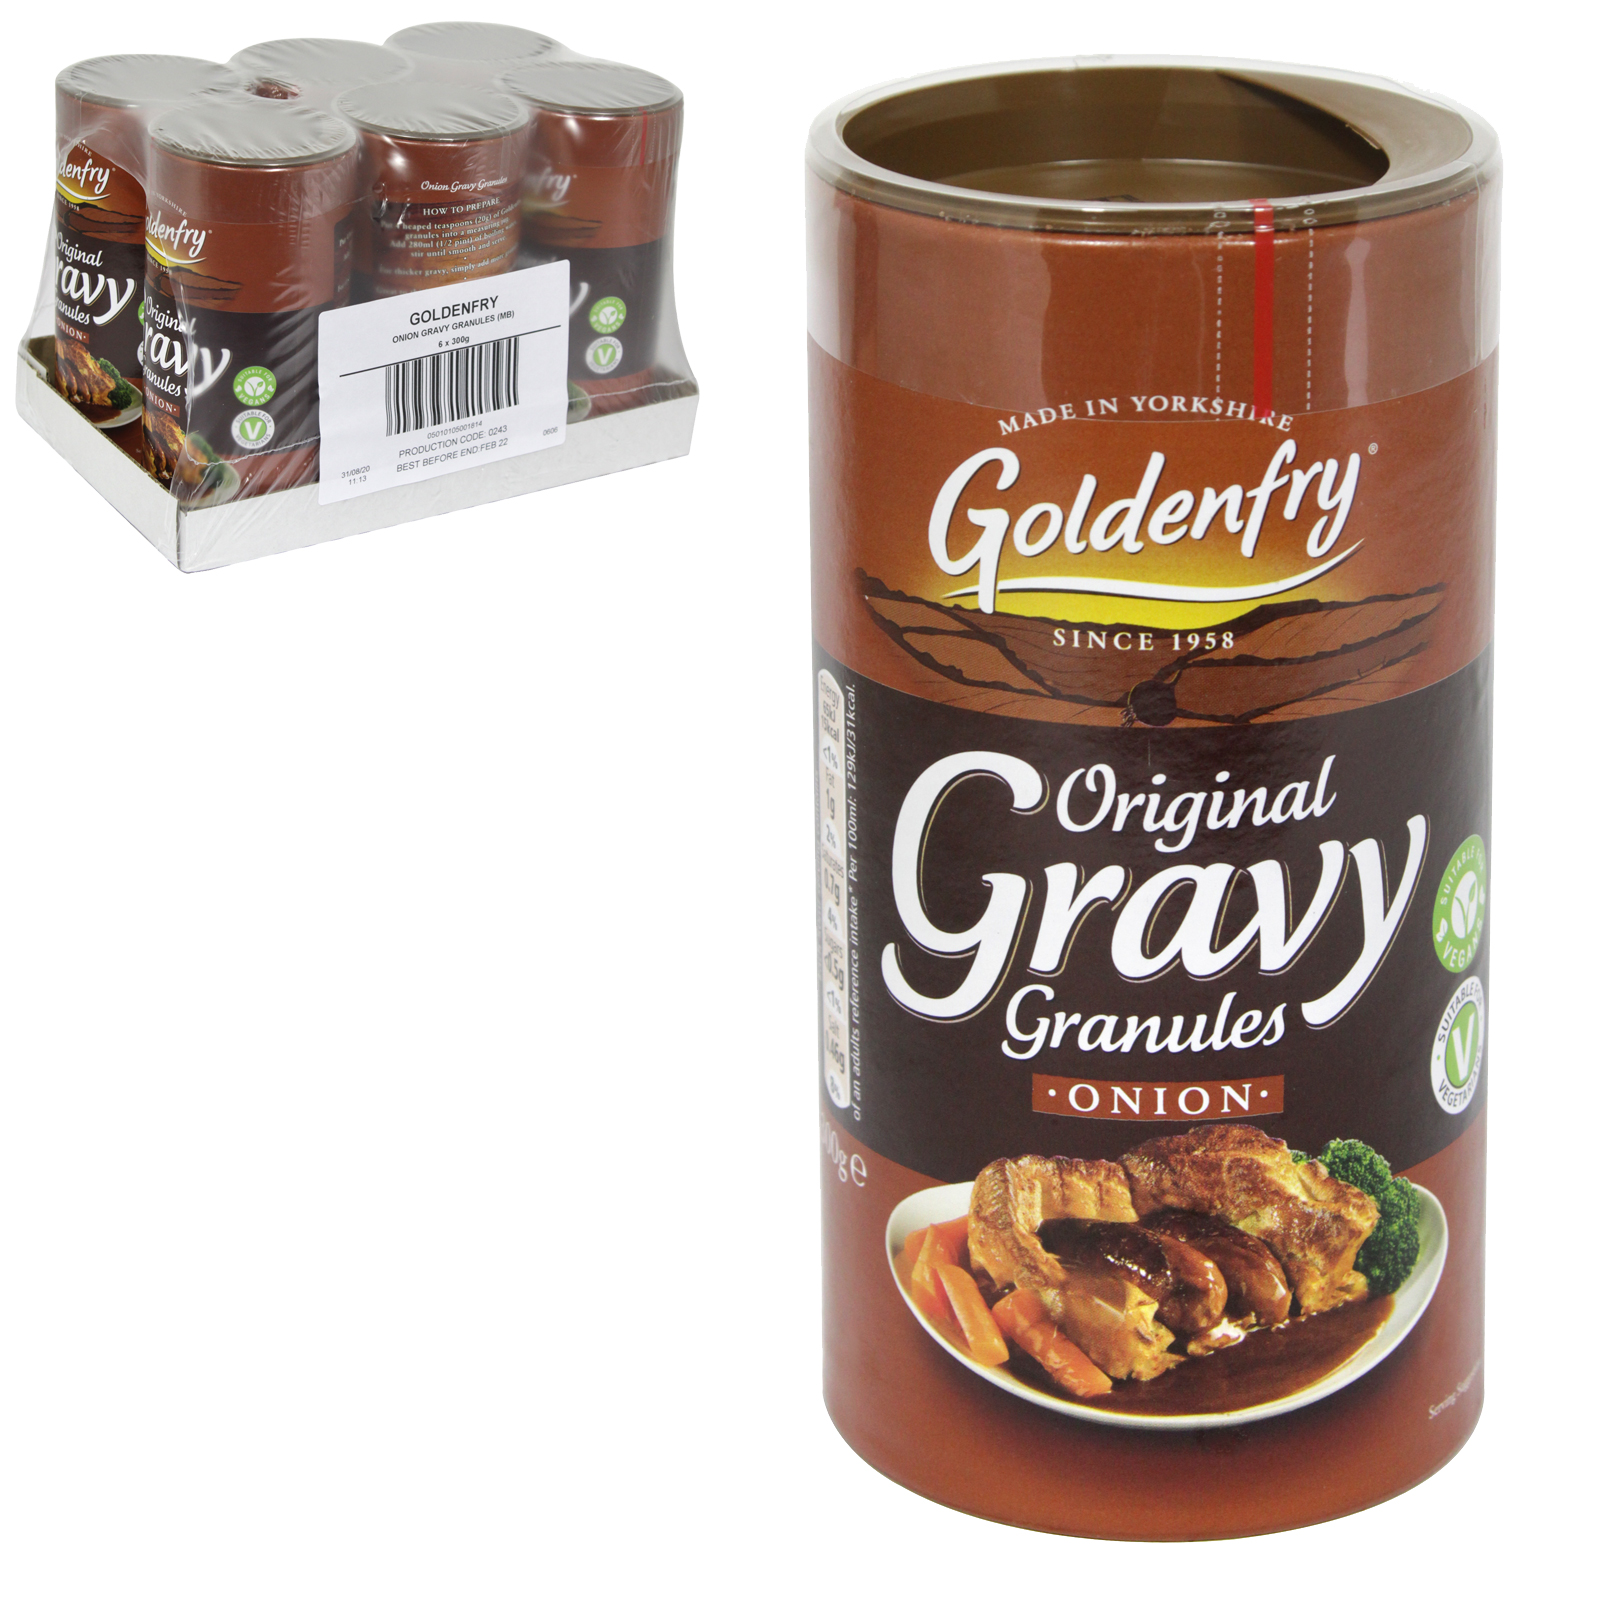 GOLDEN FRY ONION GRAVY GRANULES 400G PM ?1.49 X6